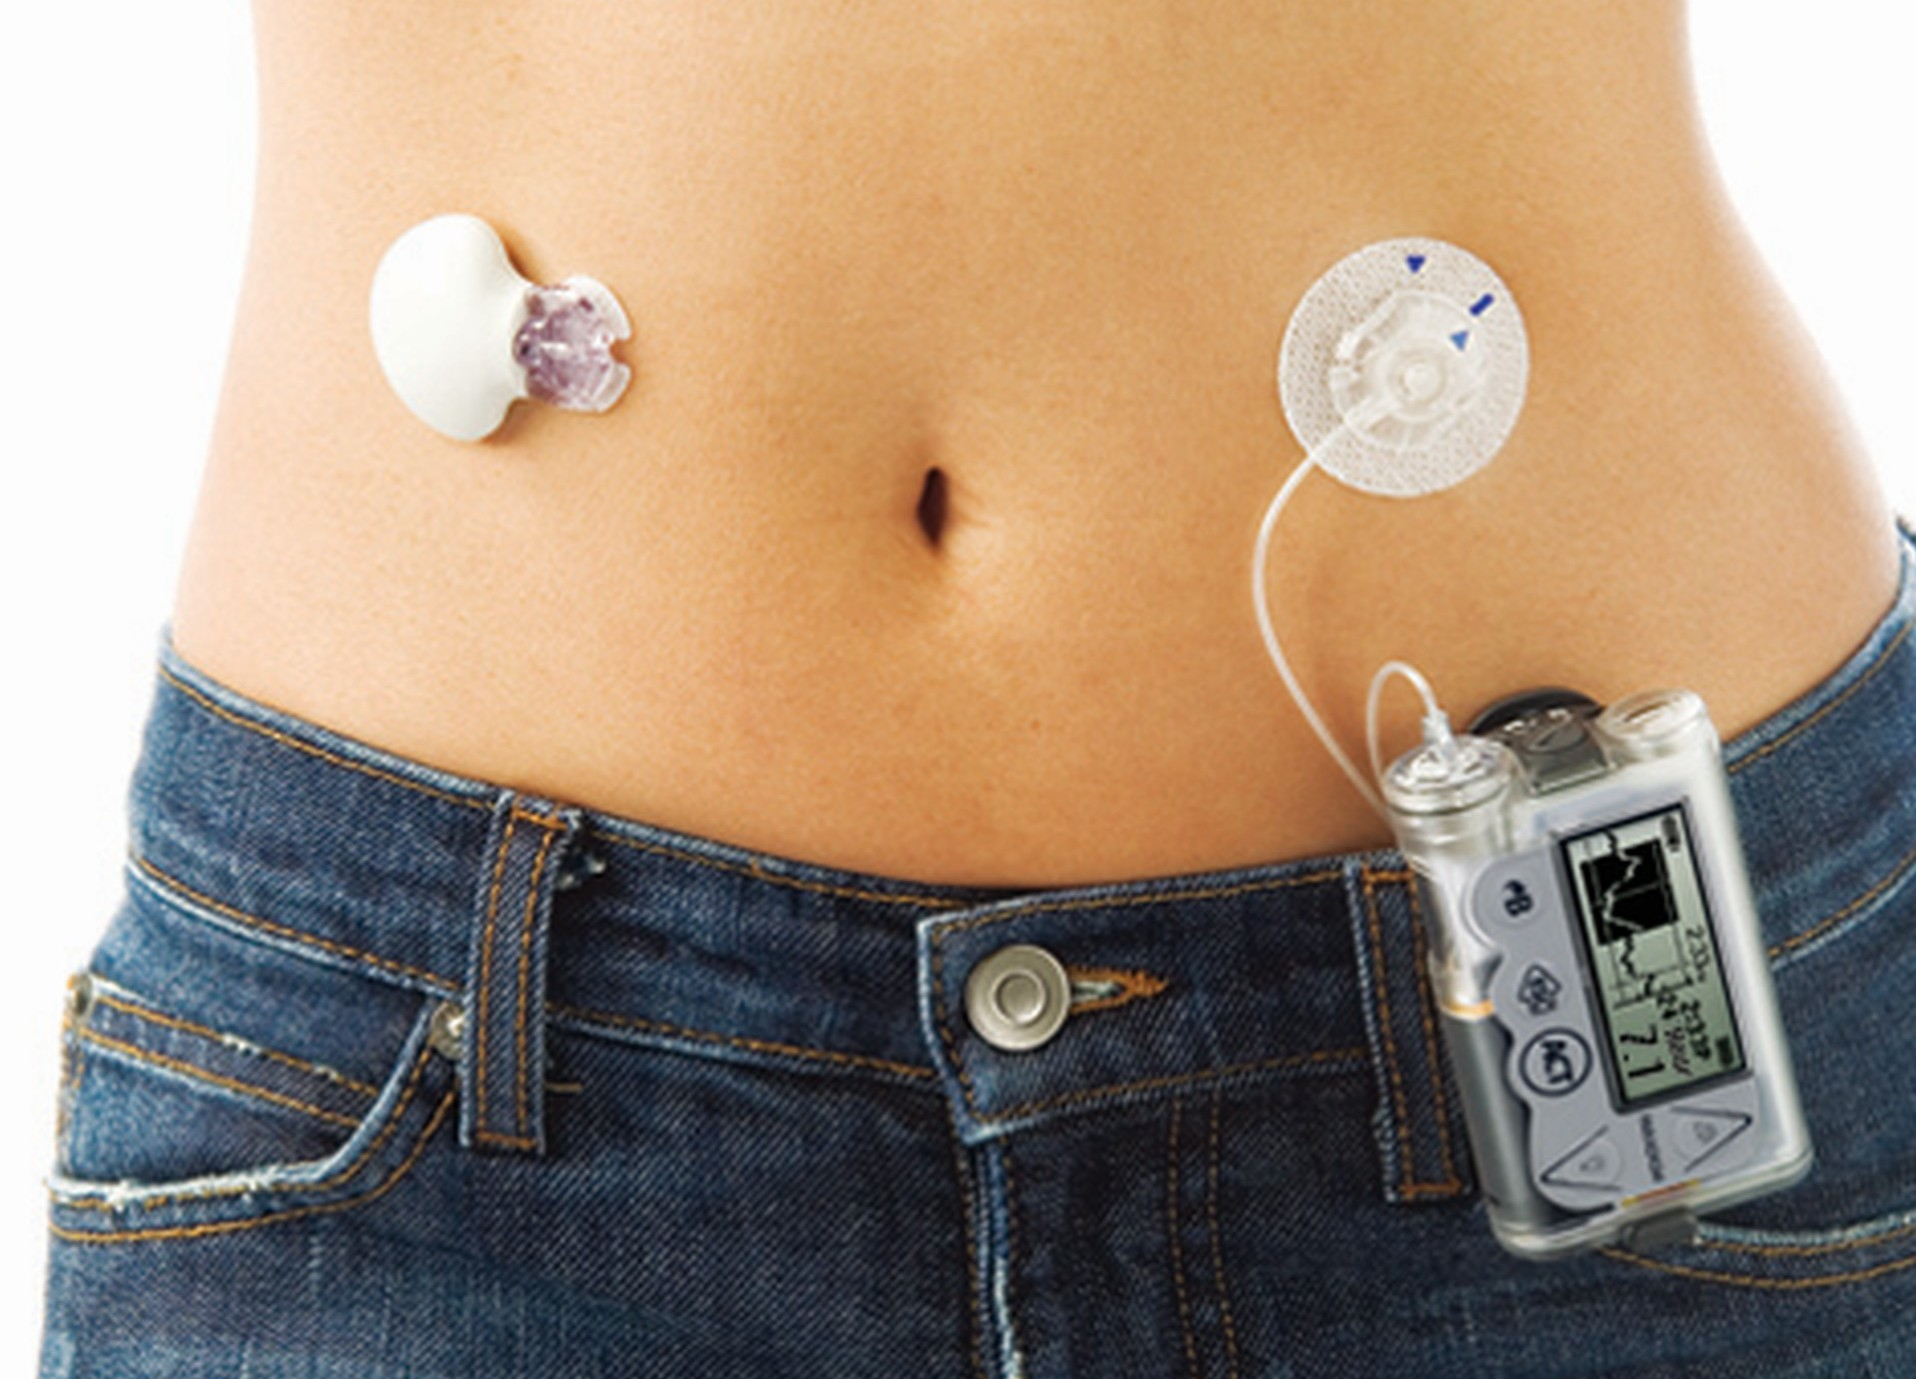 Artificial pancreas - JDRF